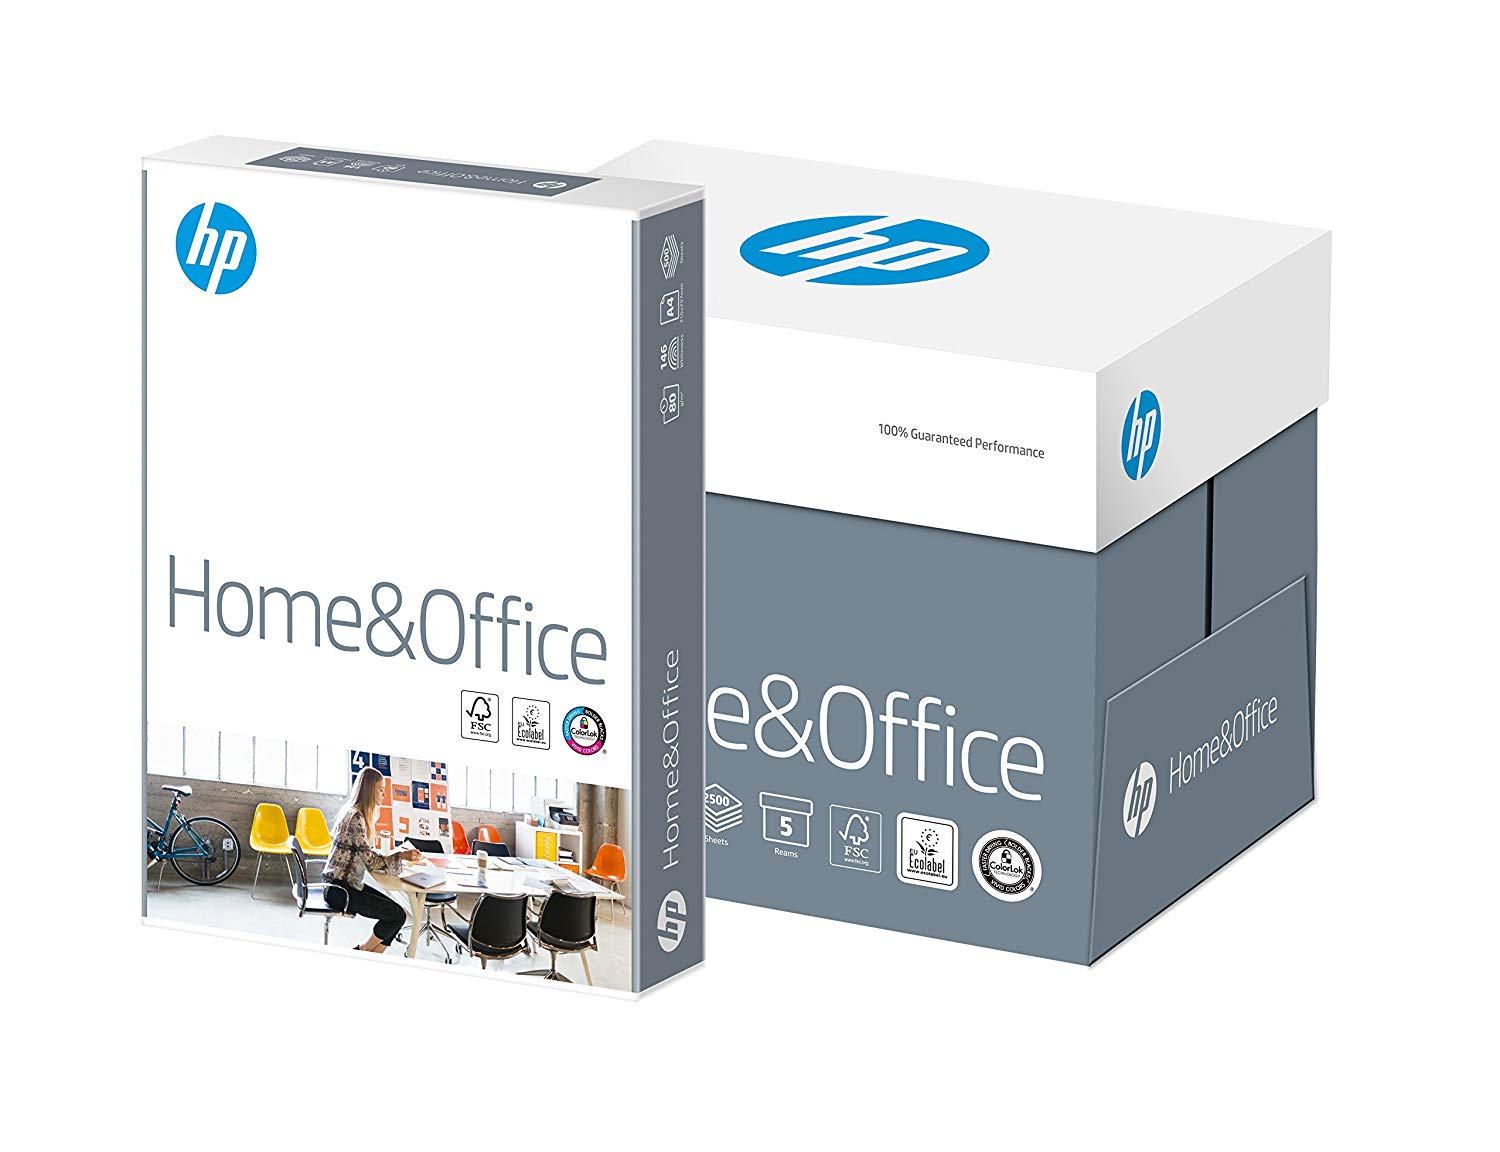 HP Home & Office Papier 80g/m² DIN-A4 - 2500 Blatt CHP150